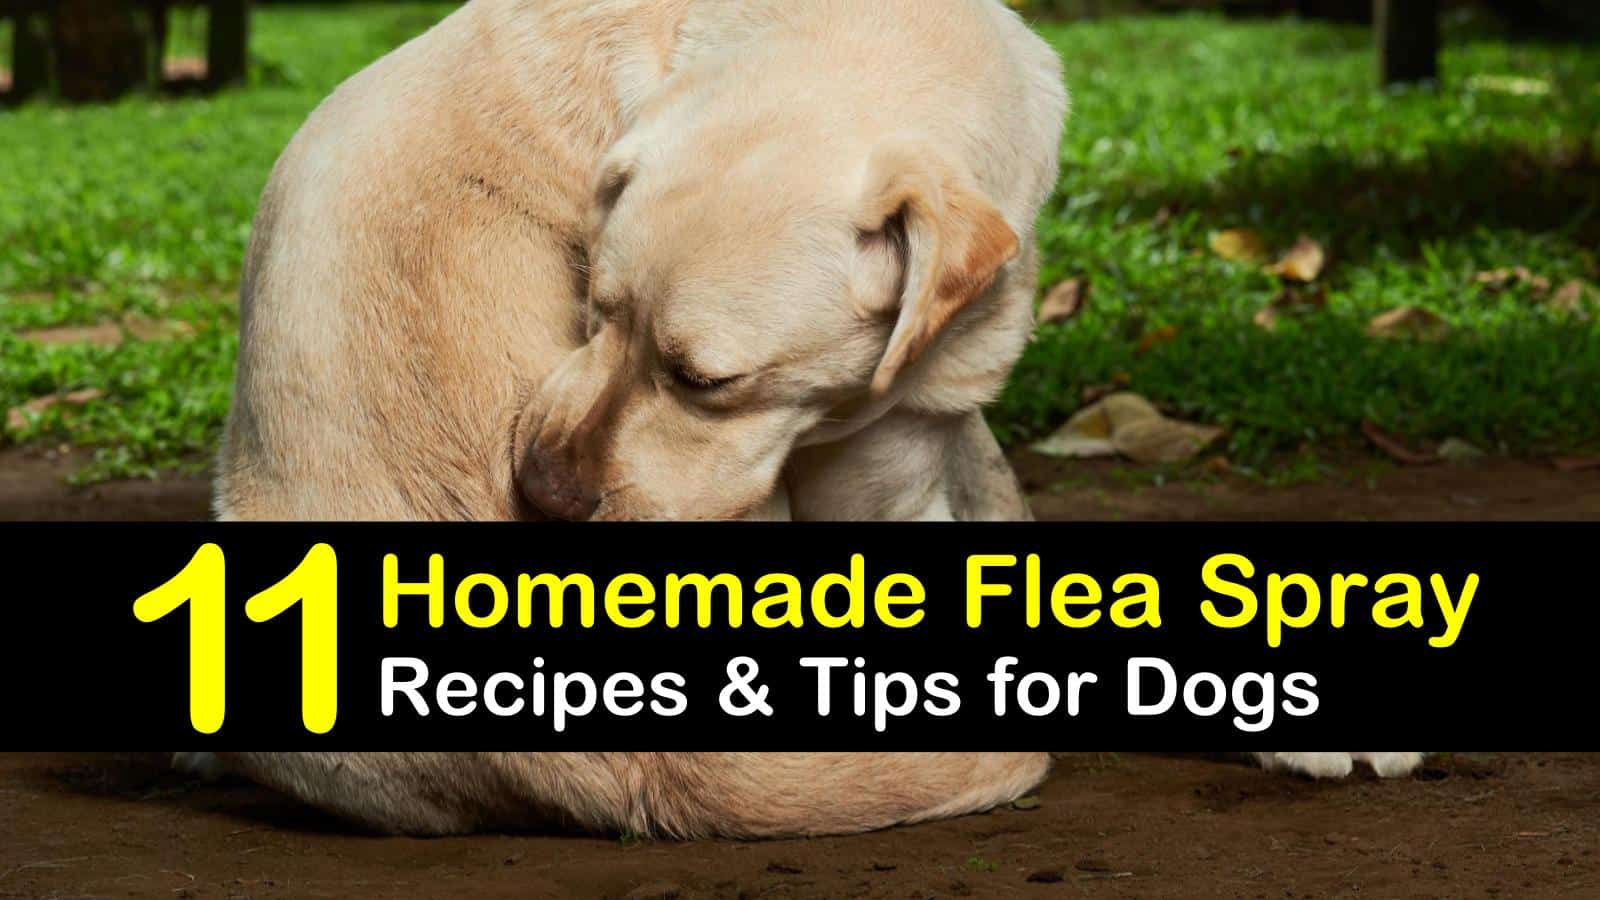 homemade flea spray for dogs titleimg1